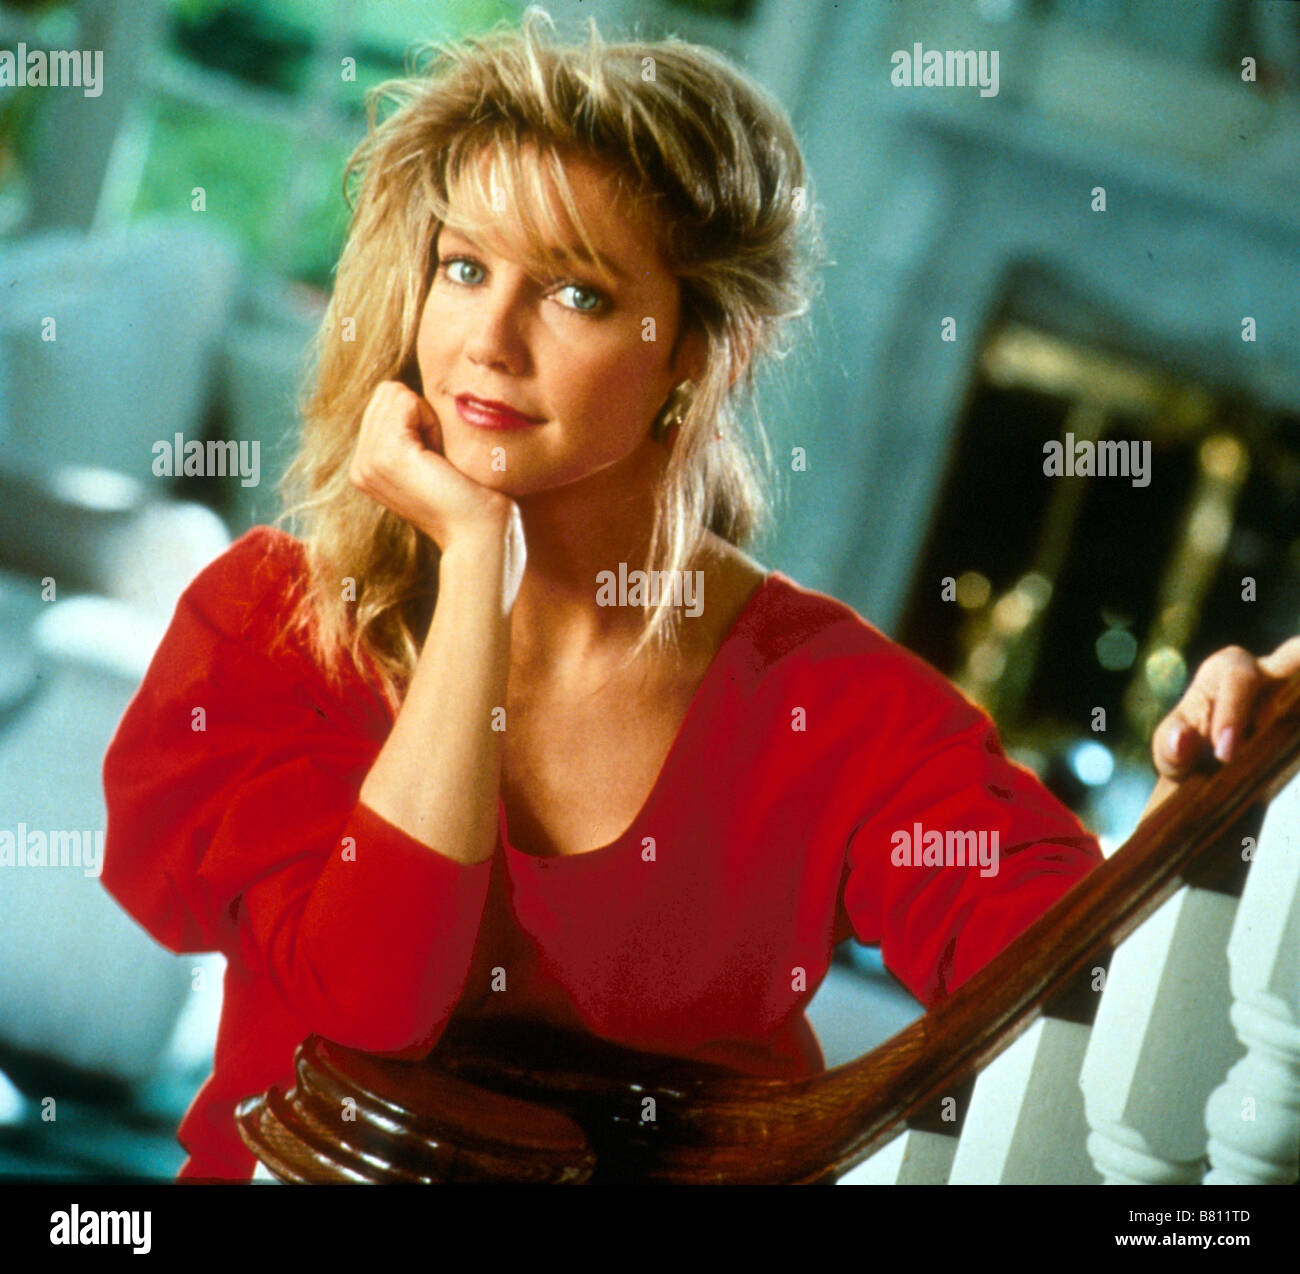 Download Wallpaper      heather locklear jeune   Full Wallpapers Download Wallpaper      heather locklear jeune